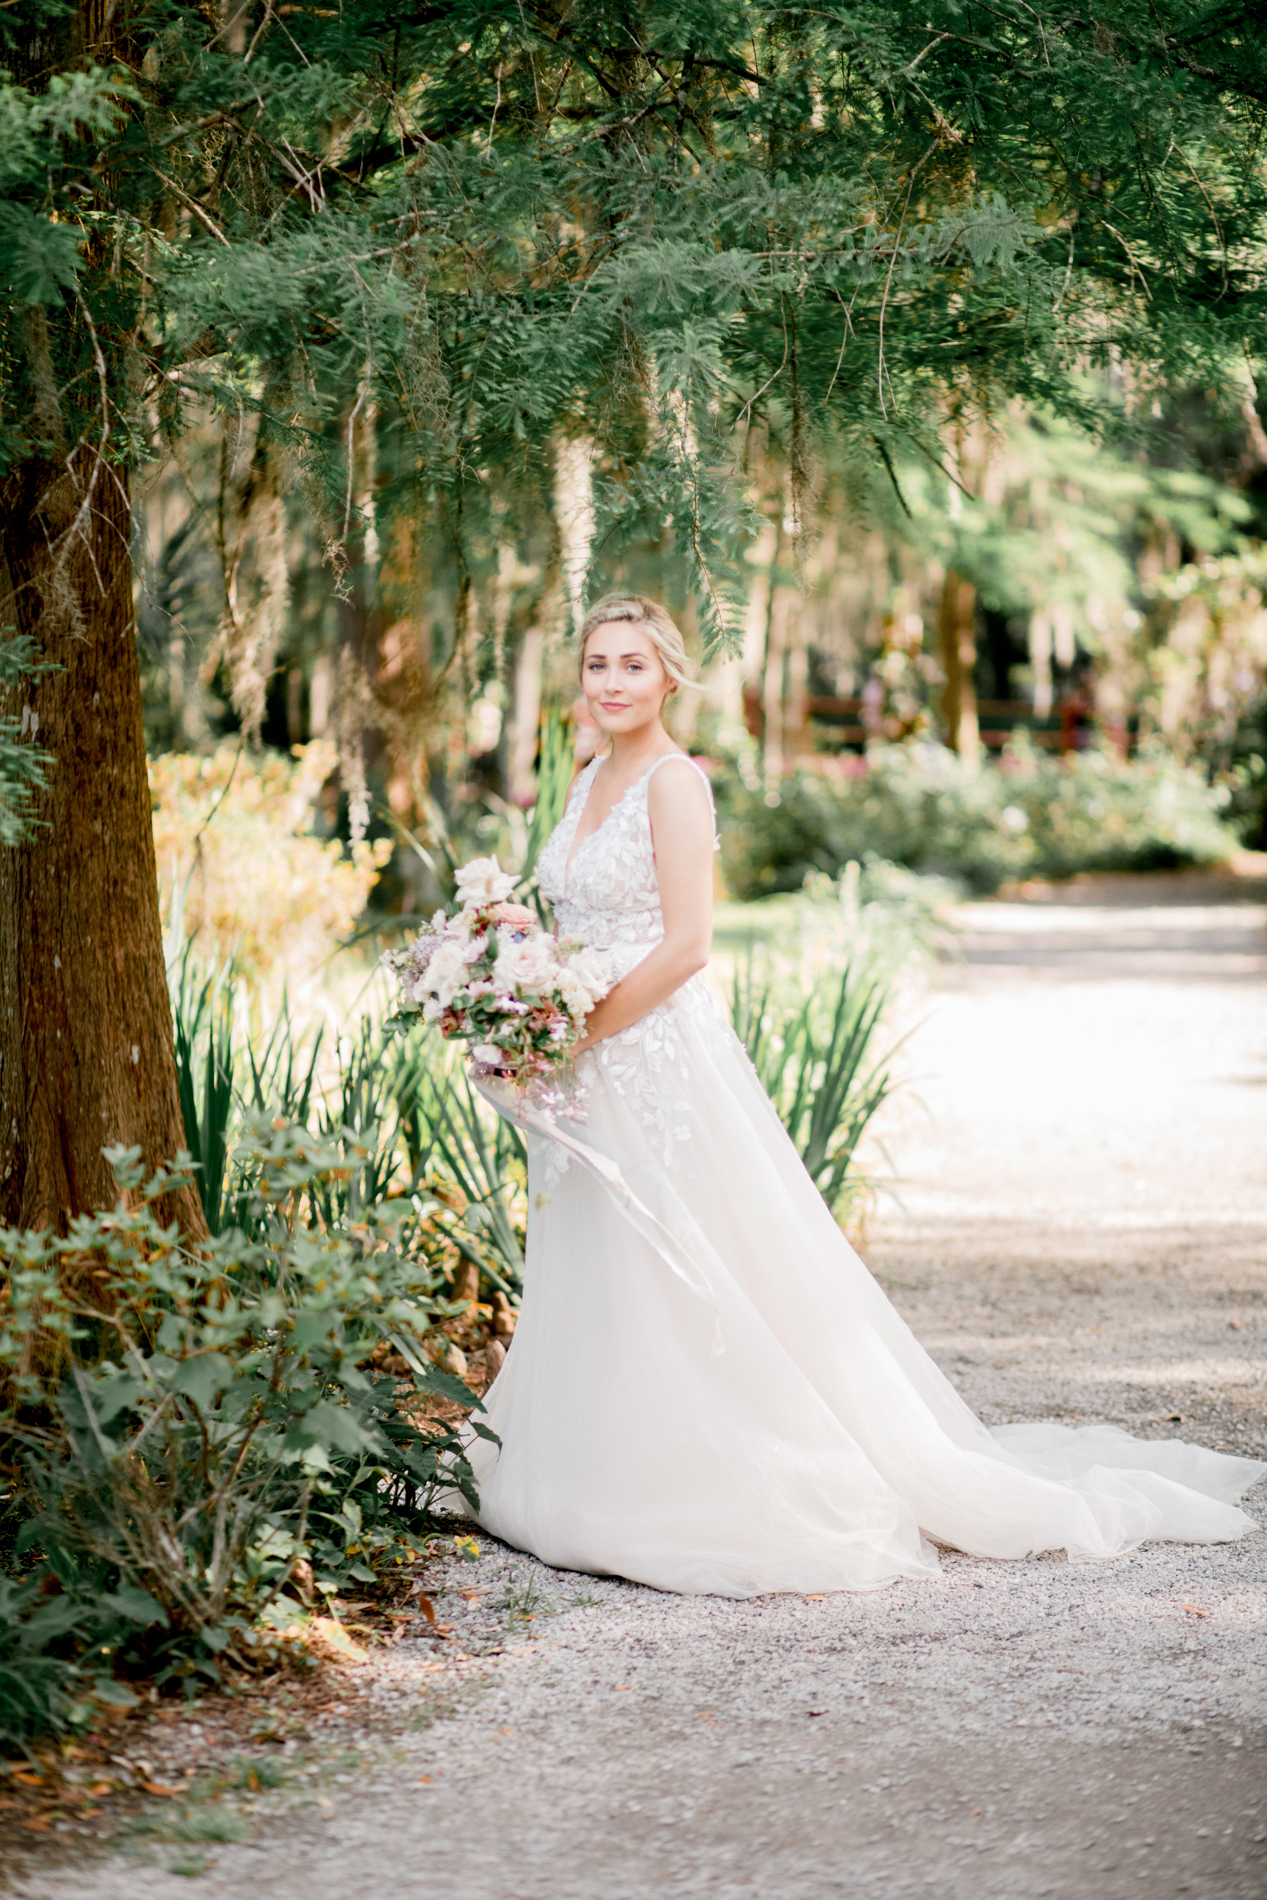 Magnolia Plantation is truly something out of a novel. The grounds where bursting with color on this warm afternoon. The Spanish moss cascaded in the light creating a painterly backdrop.